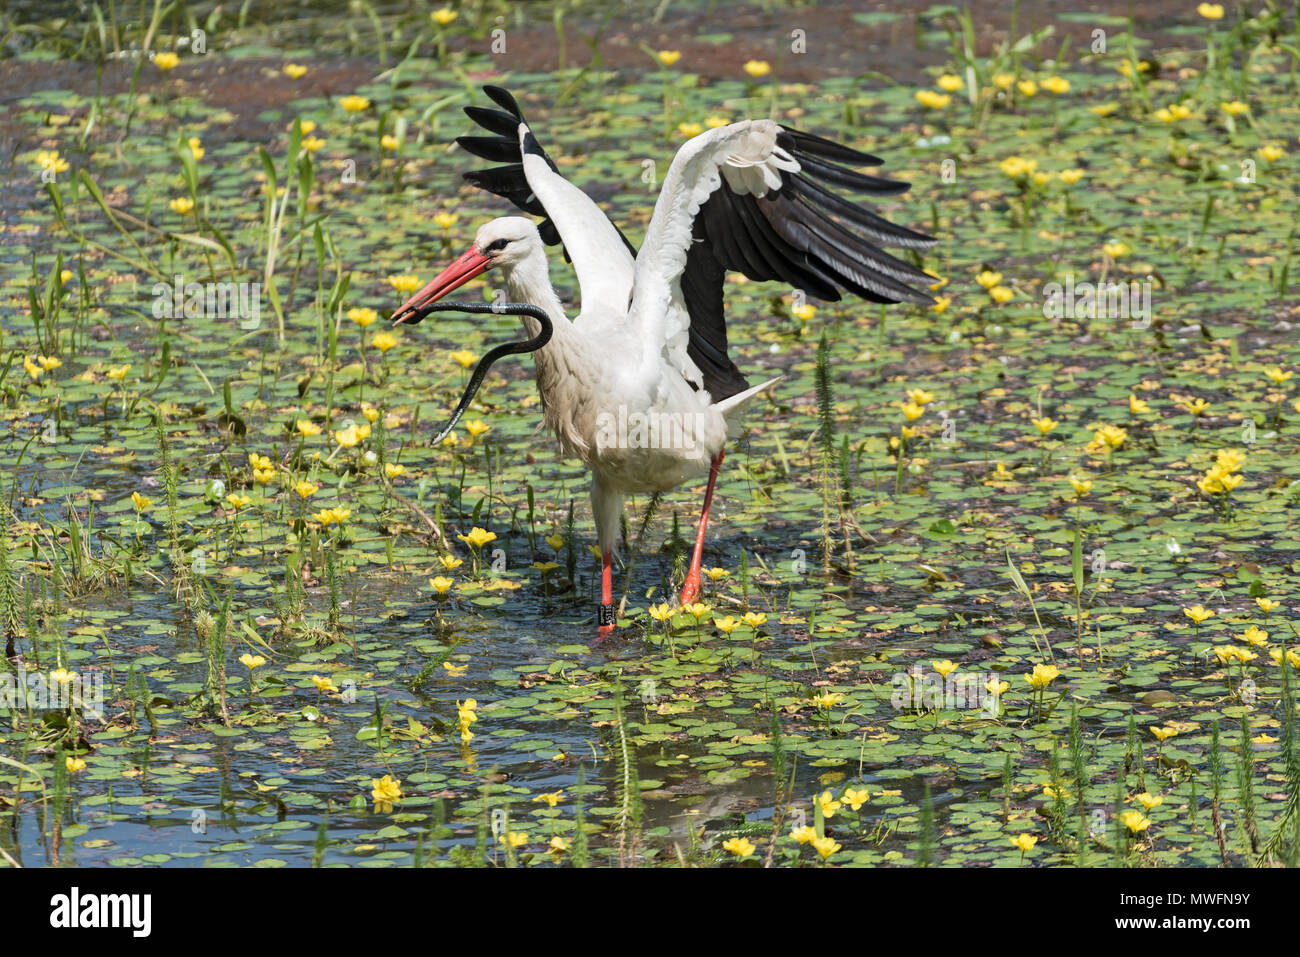 a white stork (Ciconia ciconia) catches and eats snake in the nature reserve kuehkopf, hesse, germany - Stock Image